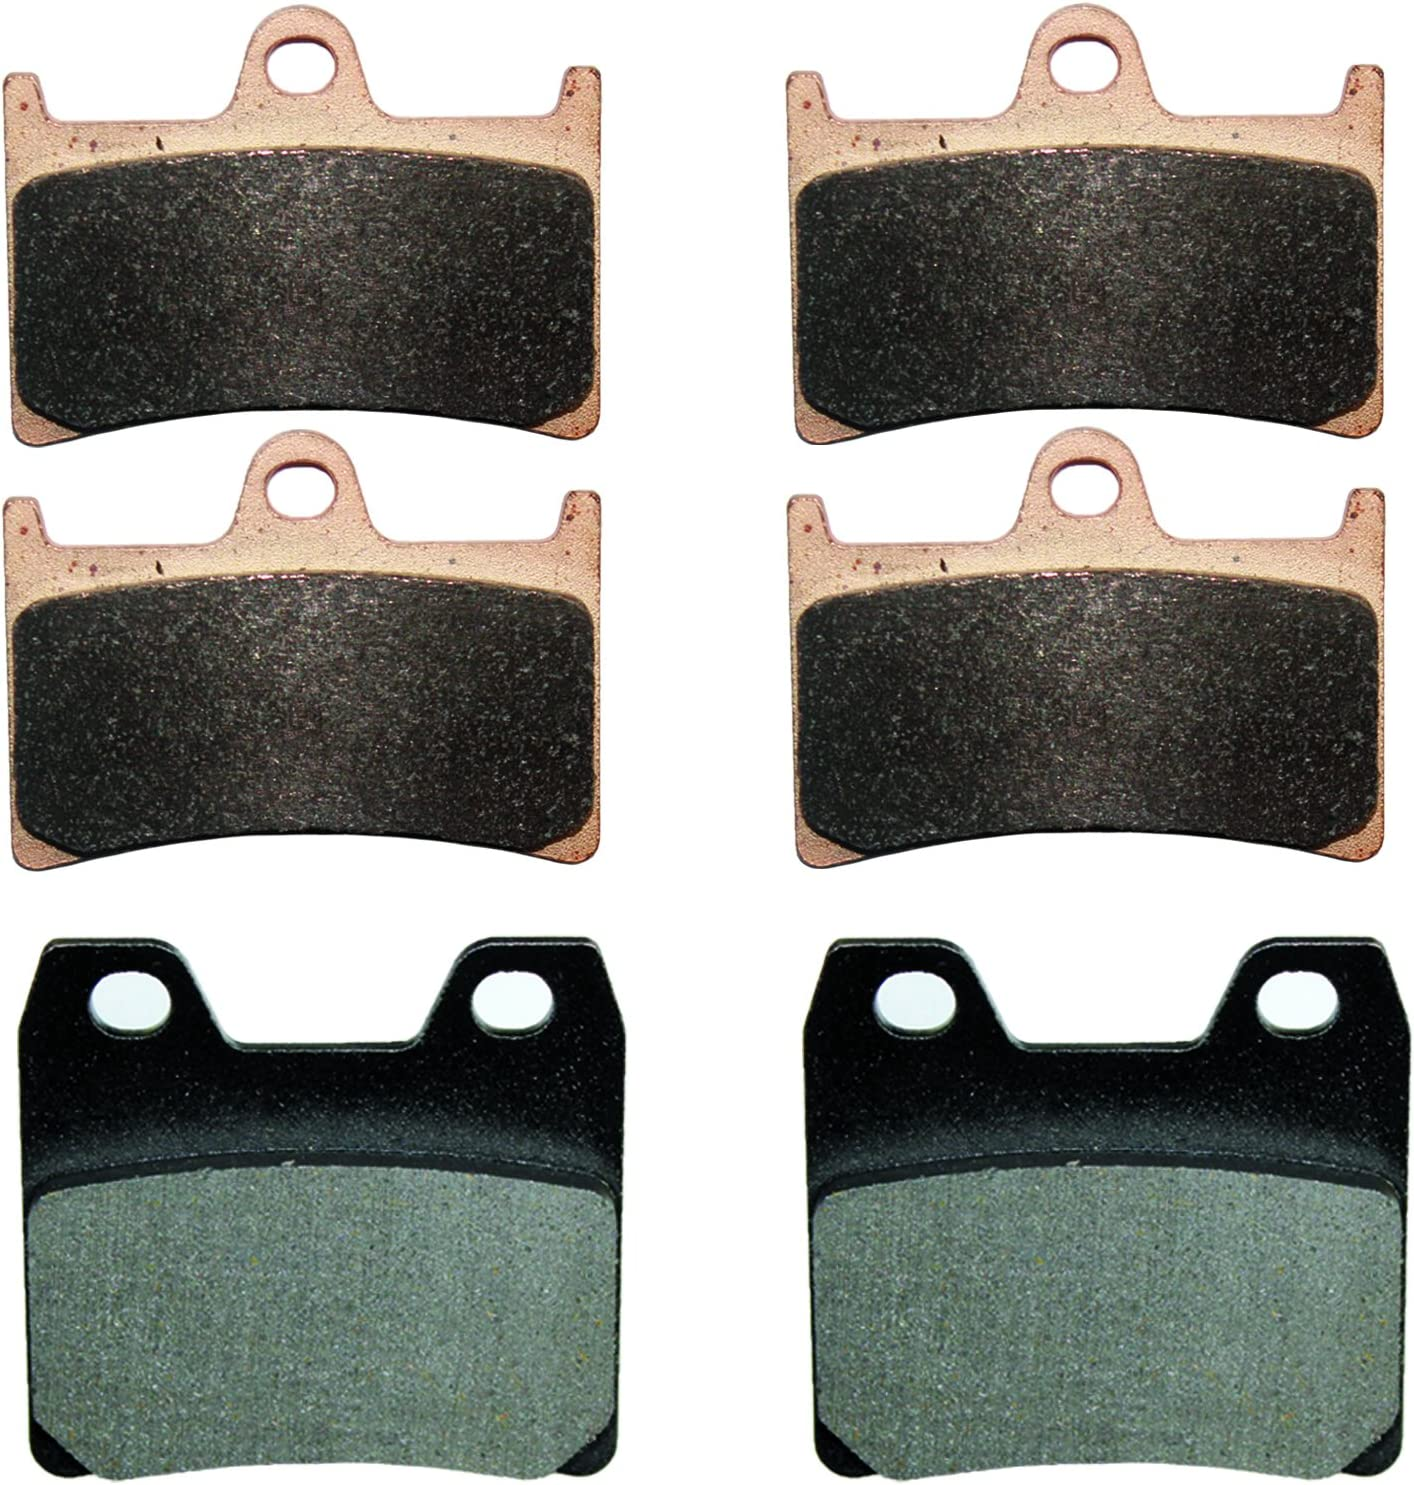 Caltric Sale Special Price Front Rear Brake Pads Yamaha With National products Fz1 Compatible Fzs10